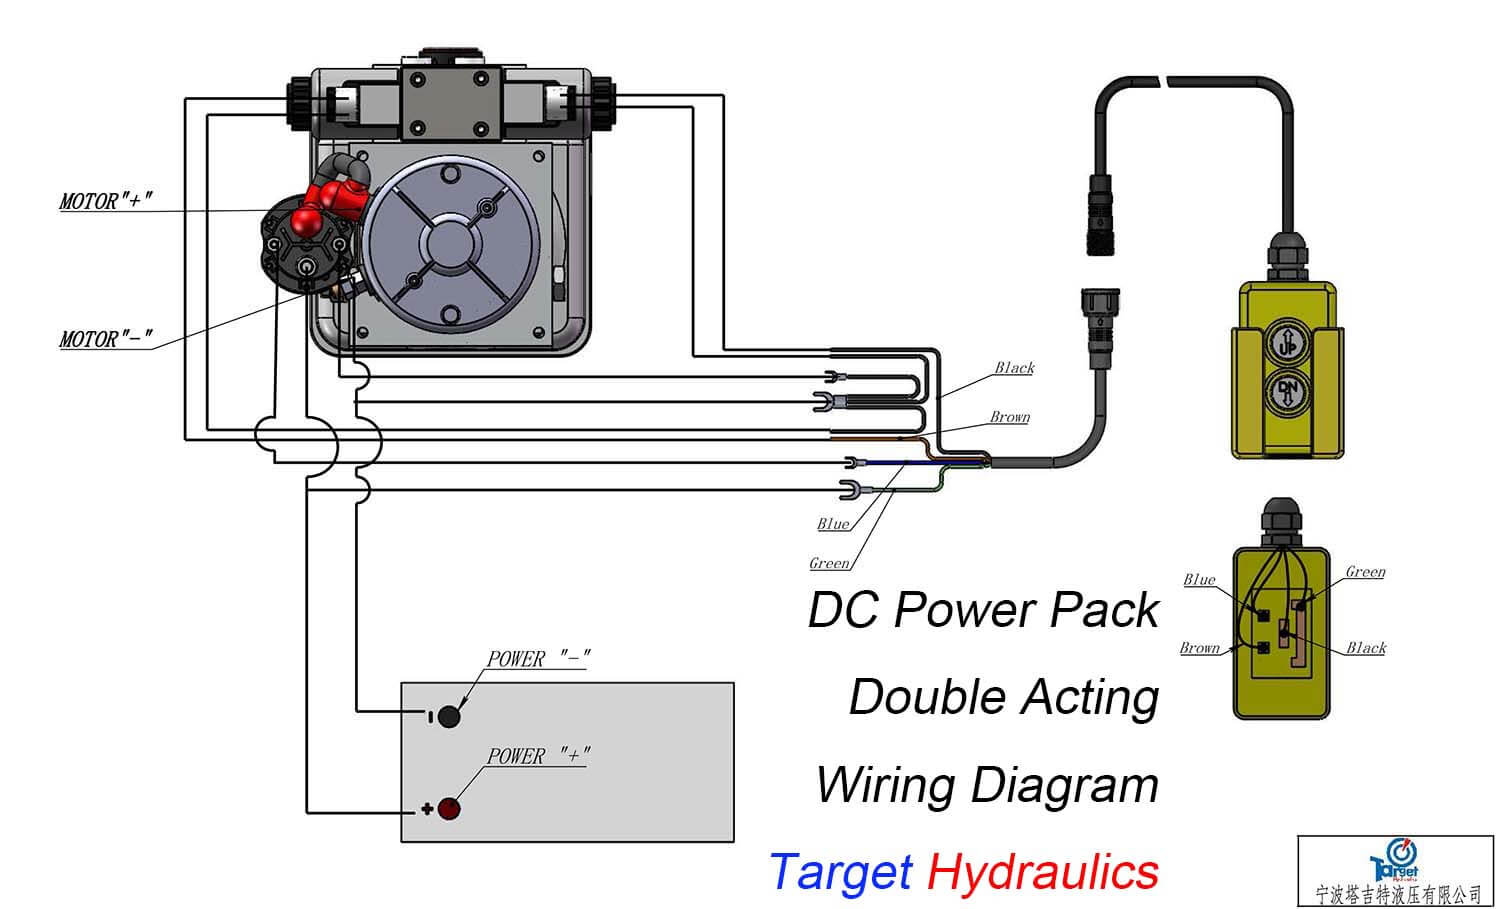 How to Wire_DC Motor Double Acting Power Pack how to wire hydraulic power pack,power unit diagram design Residential Electrical Wiring Diagrams at panicattacktreatment.co